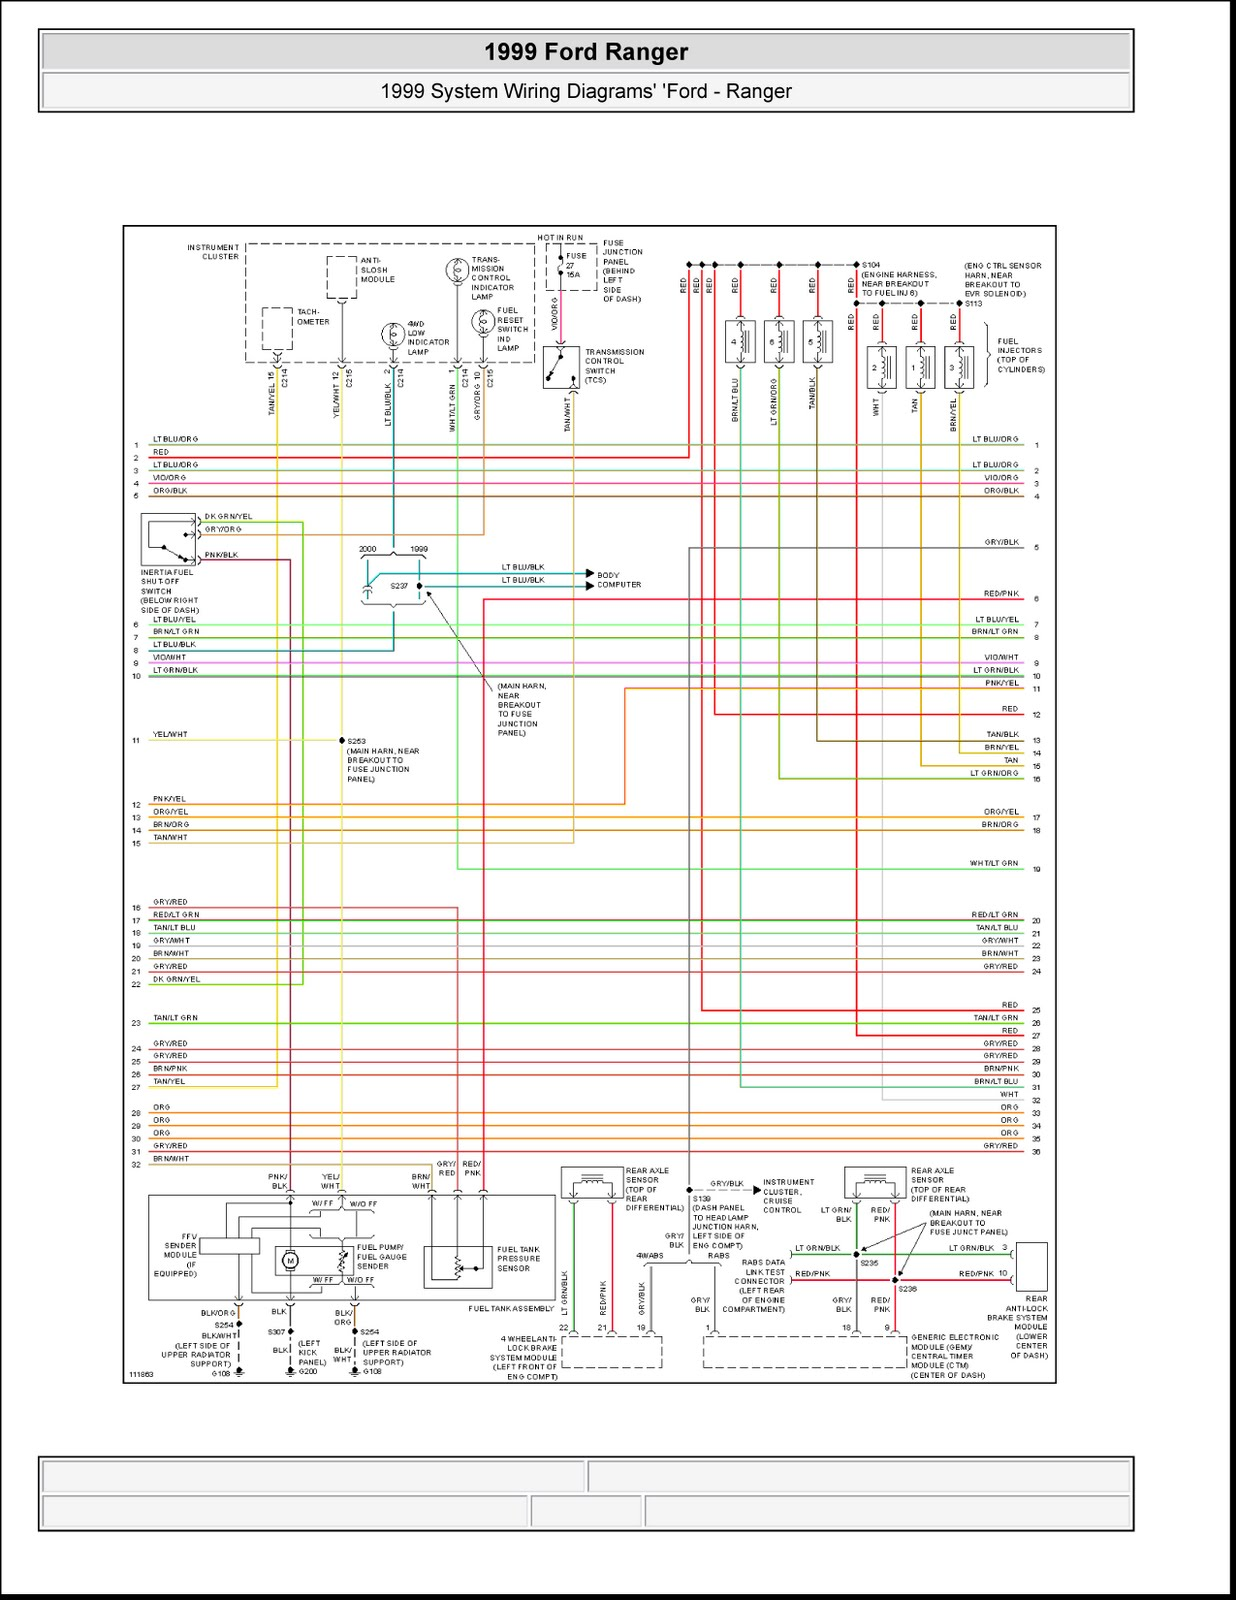 hight resolution of 1999 ford ranger system wiring diagrams